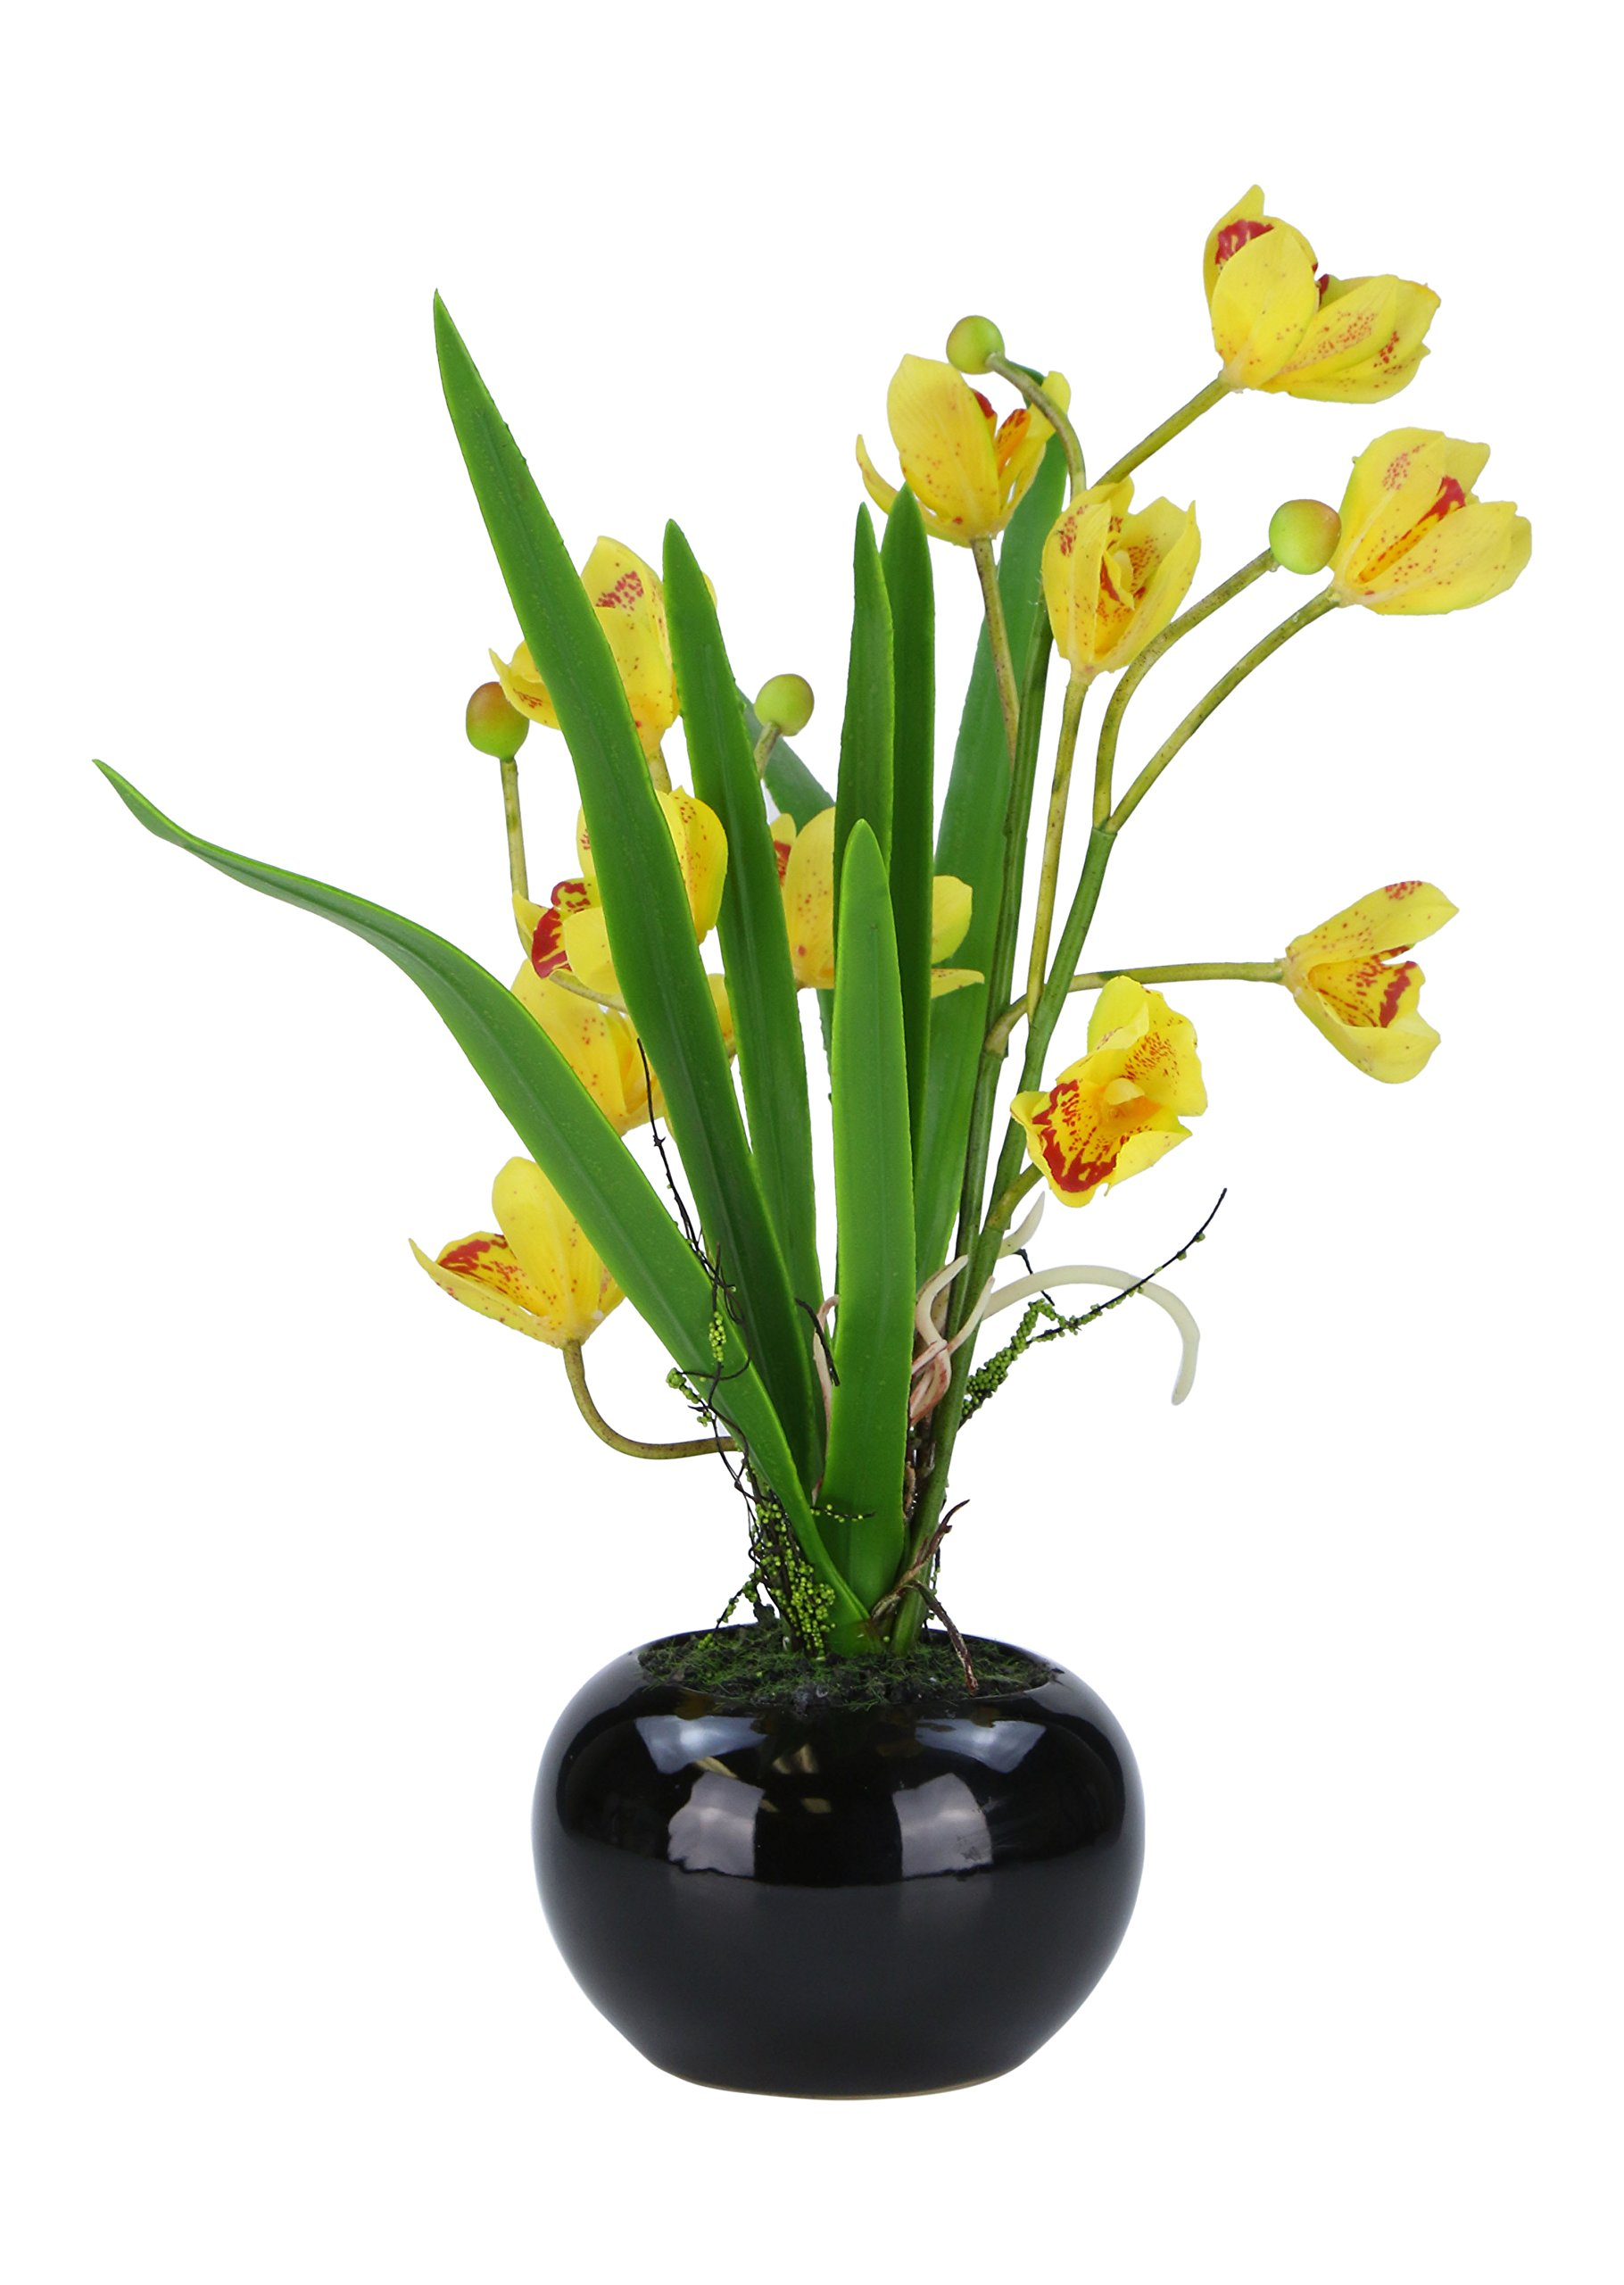 Gorgeous And Unique 18 Inch AMERIQUE Orchid Artificial Silk Flower Plant, with Fancy Decorative Pot, Feel Real Technology, Super Quality, Designed and Assembled in USA